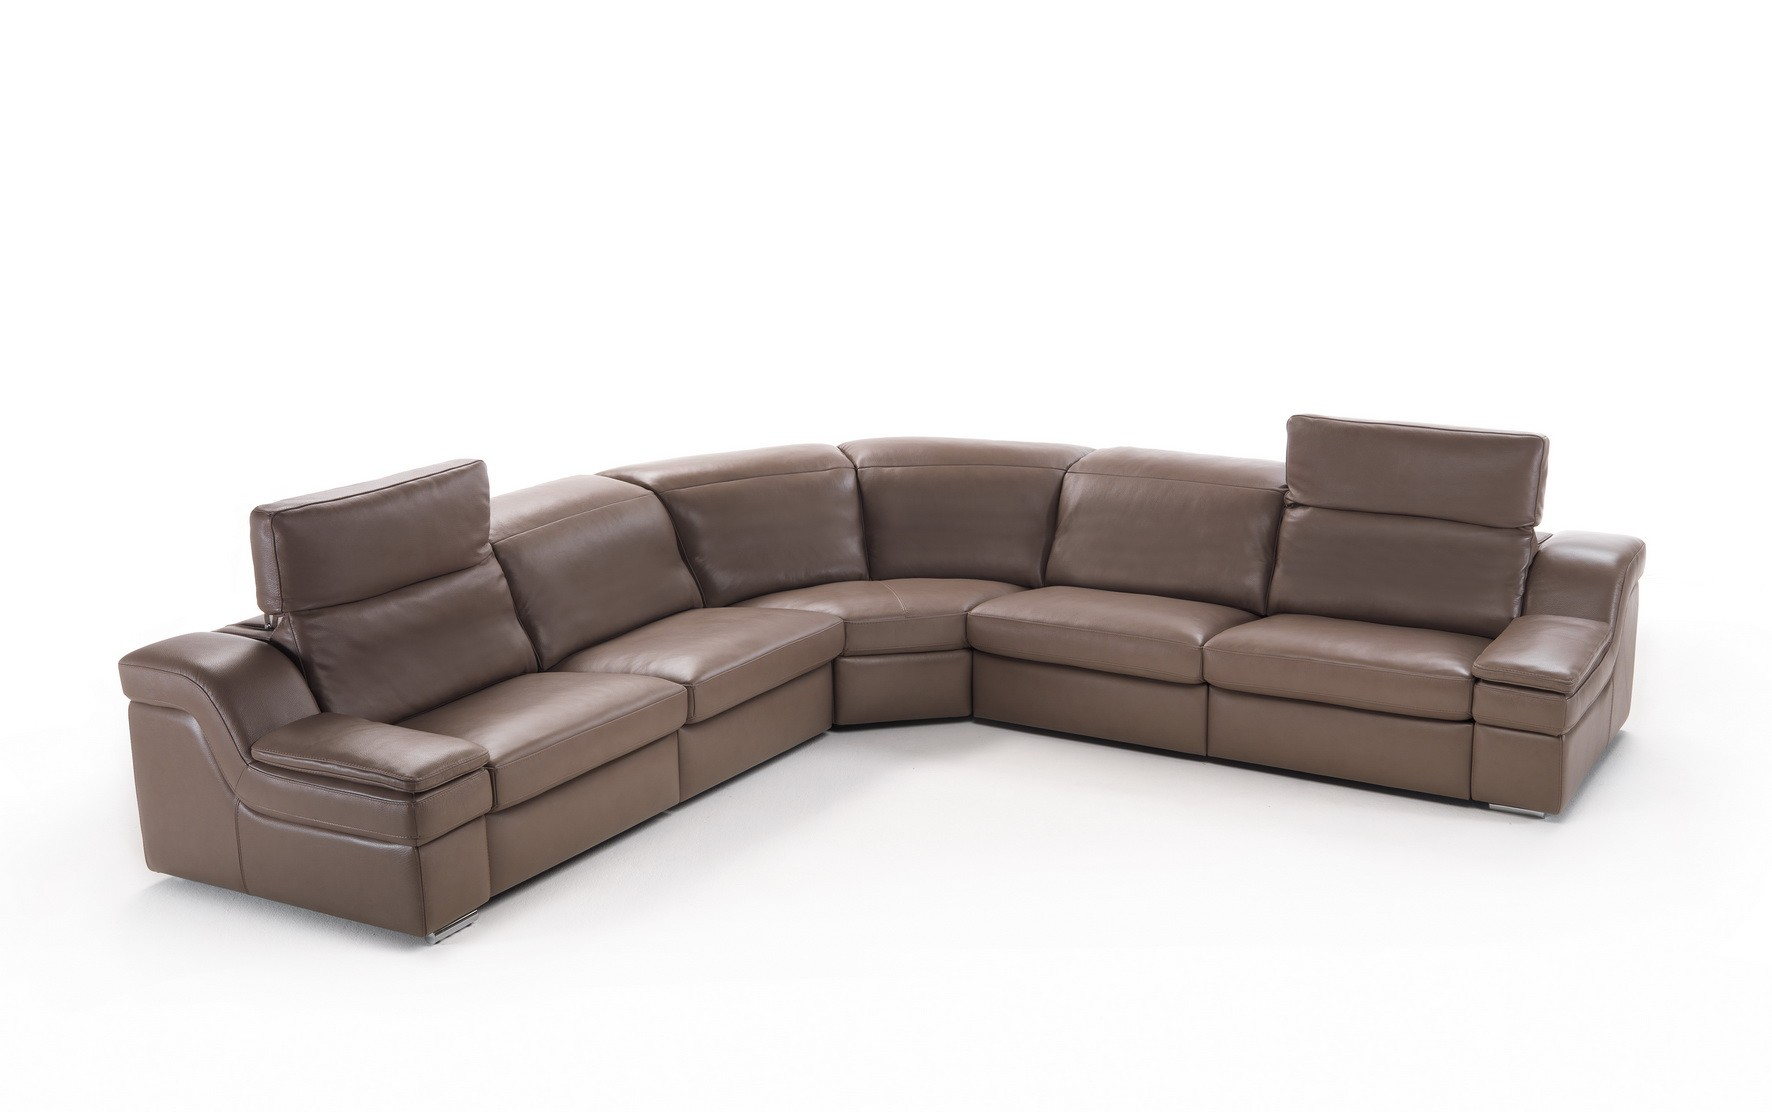 fulham sofa knock off brown leather decorating living room soft italian sectional with reclining